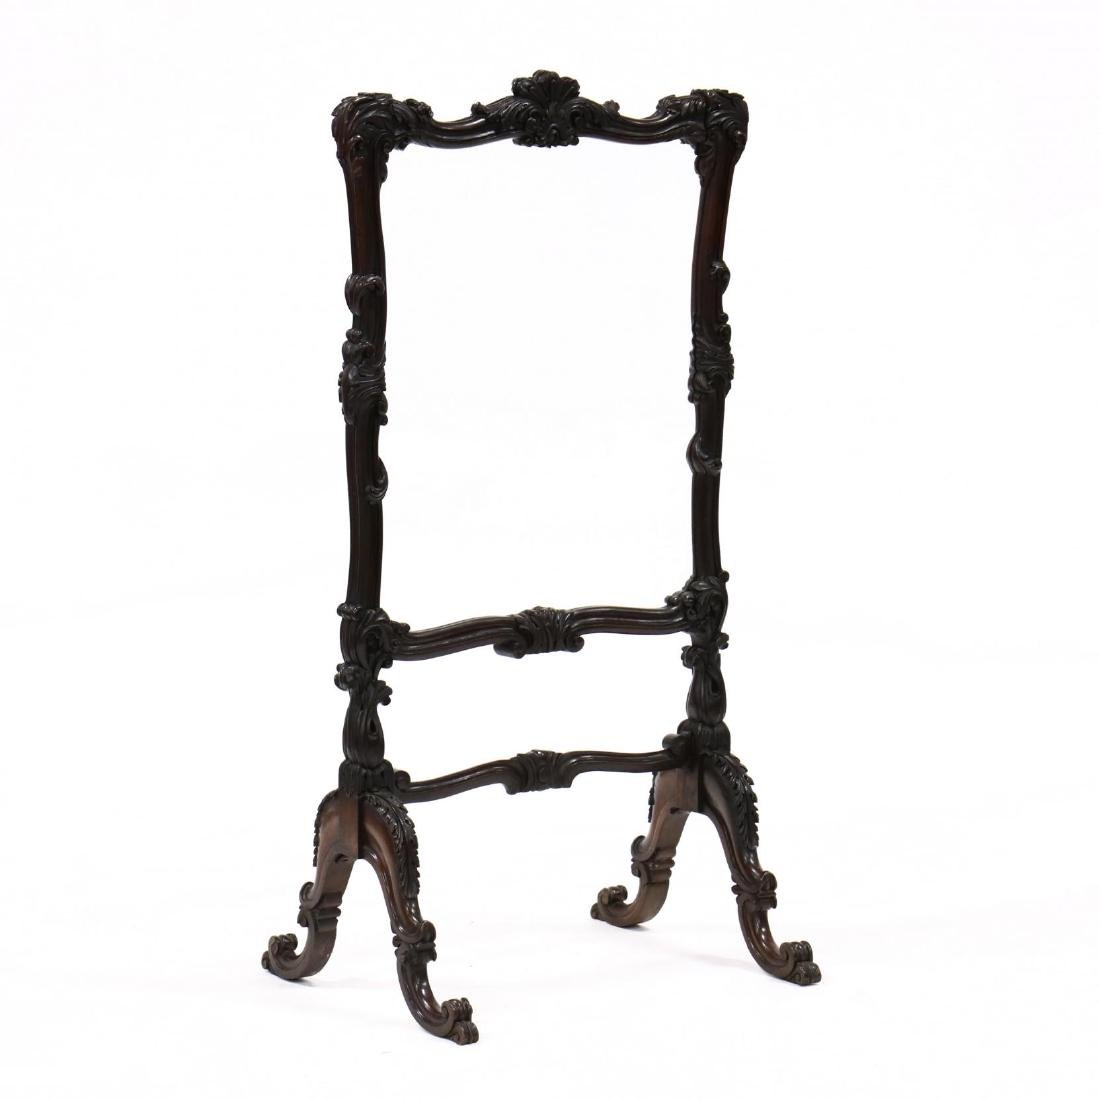 Rococo Revival Carved Rosewood Fire Screen